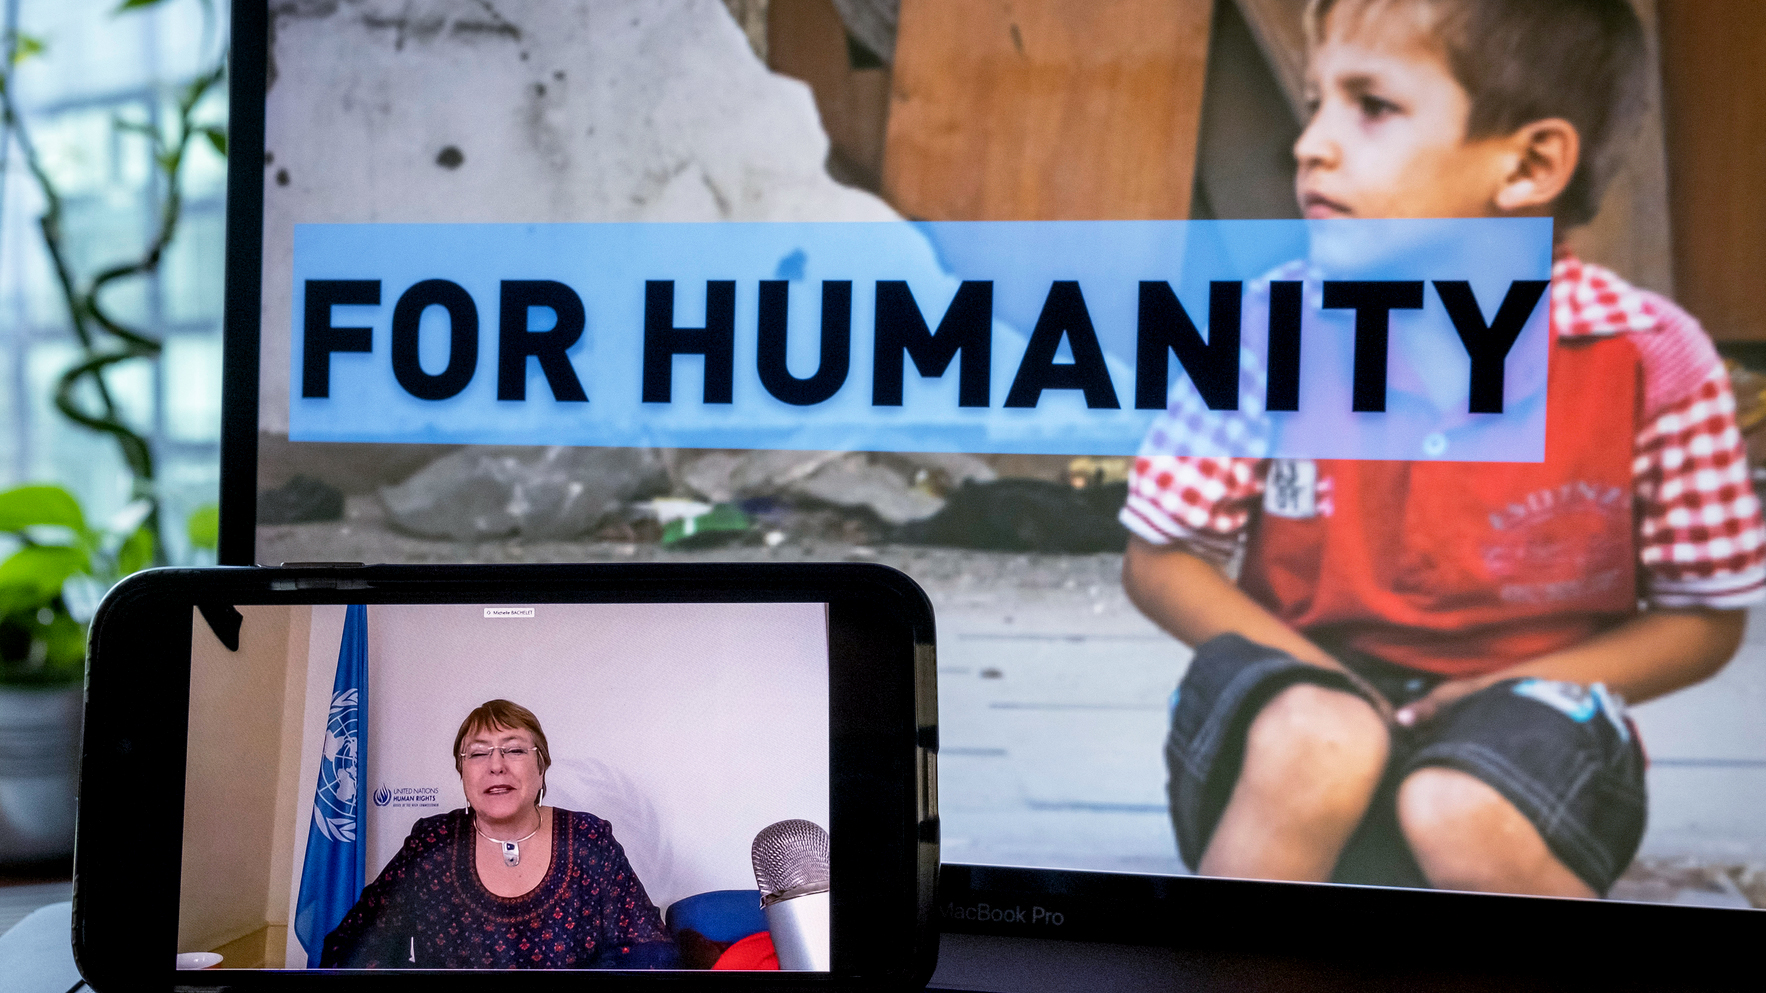 Bachelet is seen on a screen of a smart phone with a laptop behind showing a boy and text reading 'For Humanity'